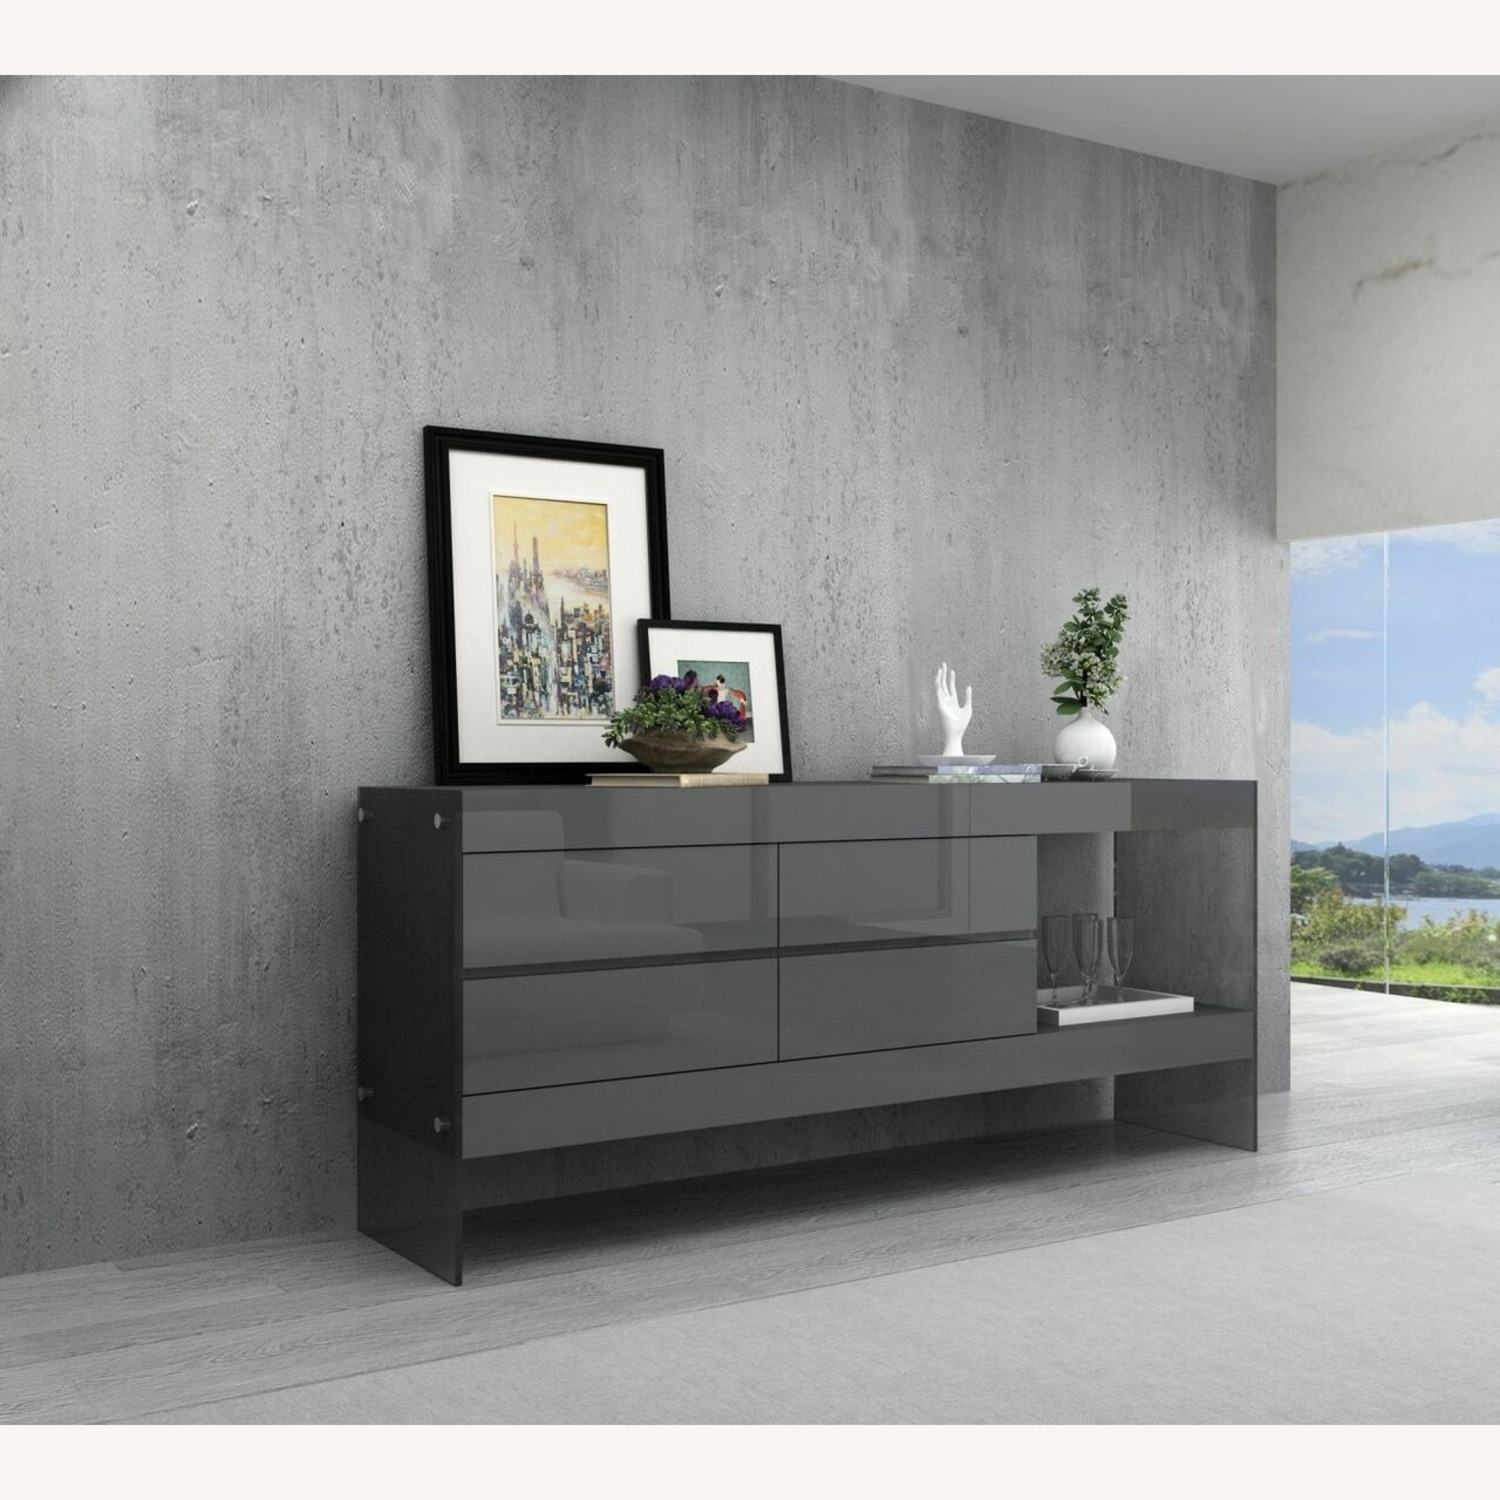 Modern Buffet In Grey Finish W/ Glass Base - image-3